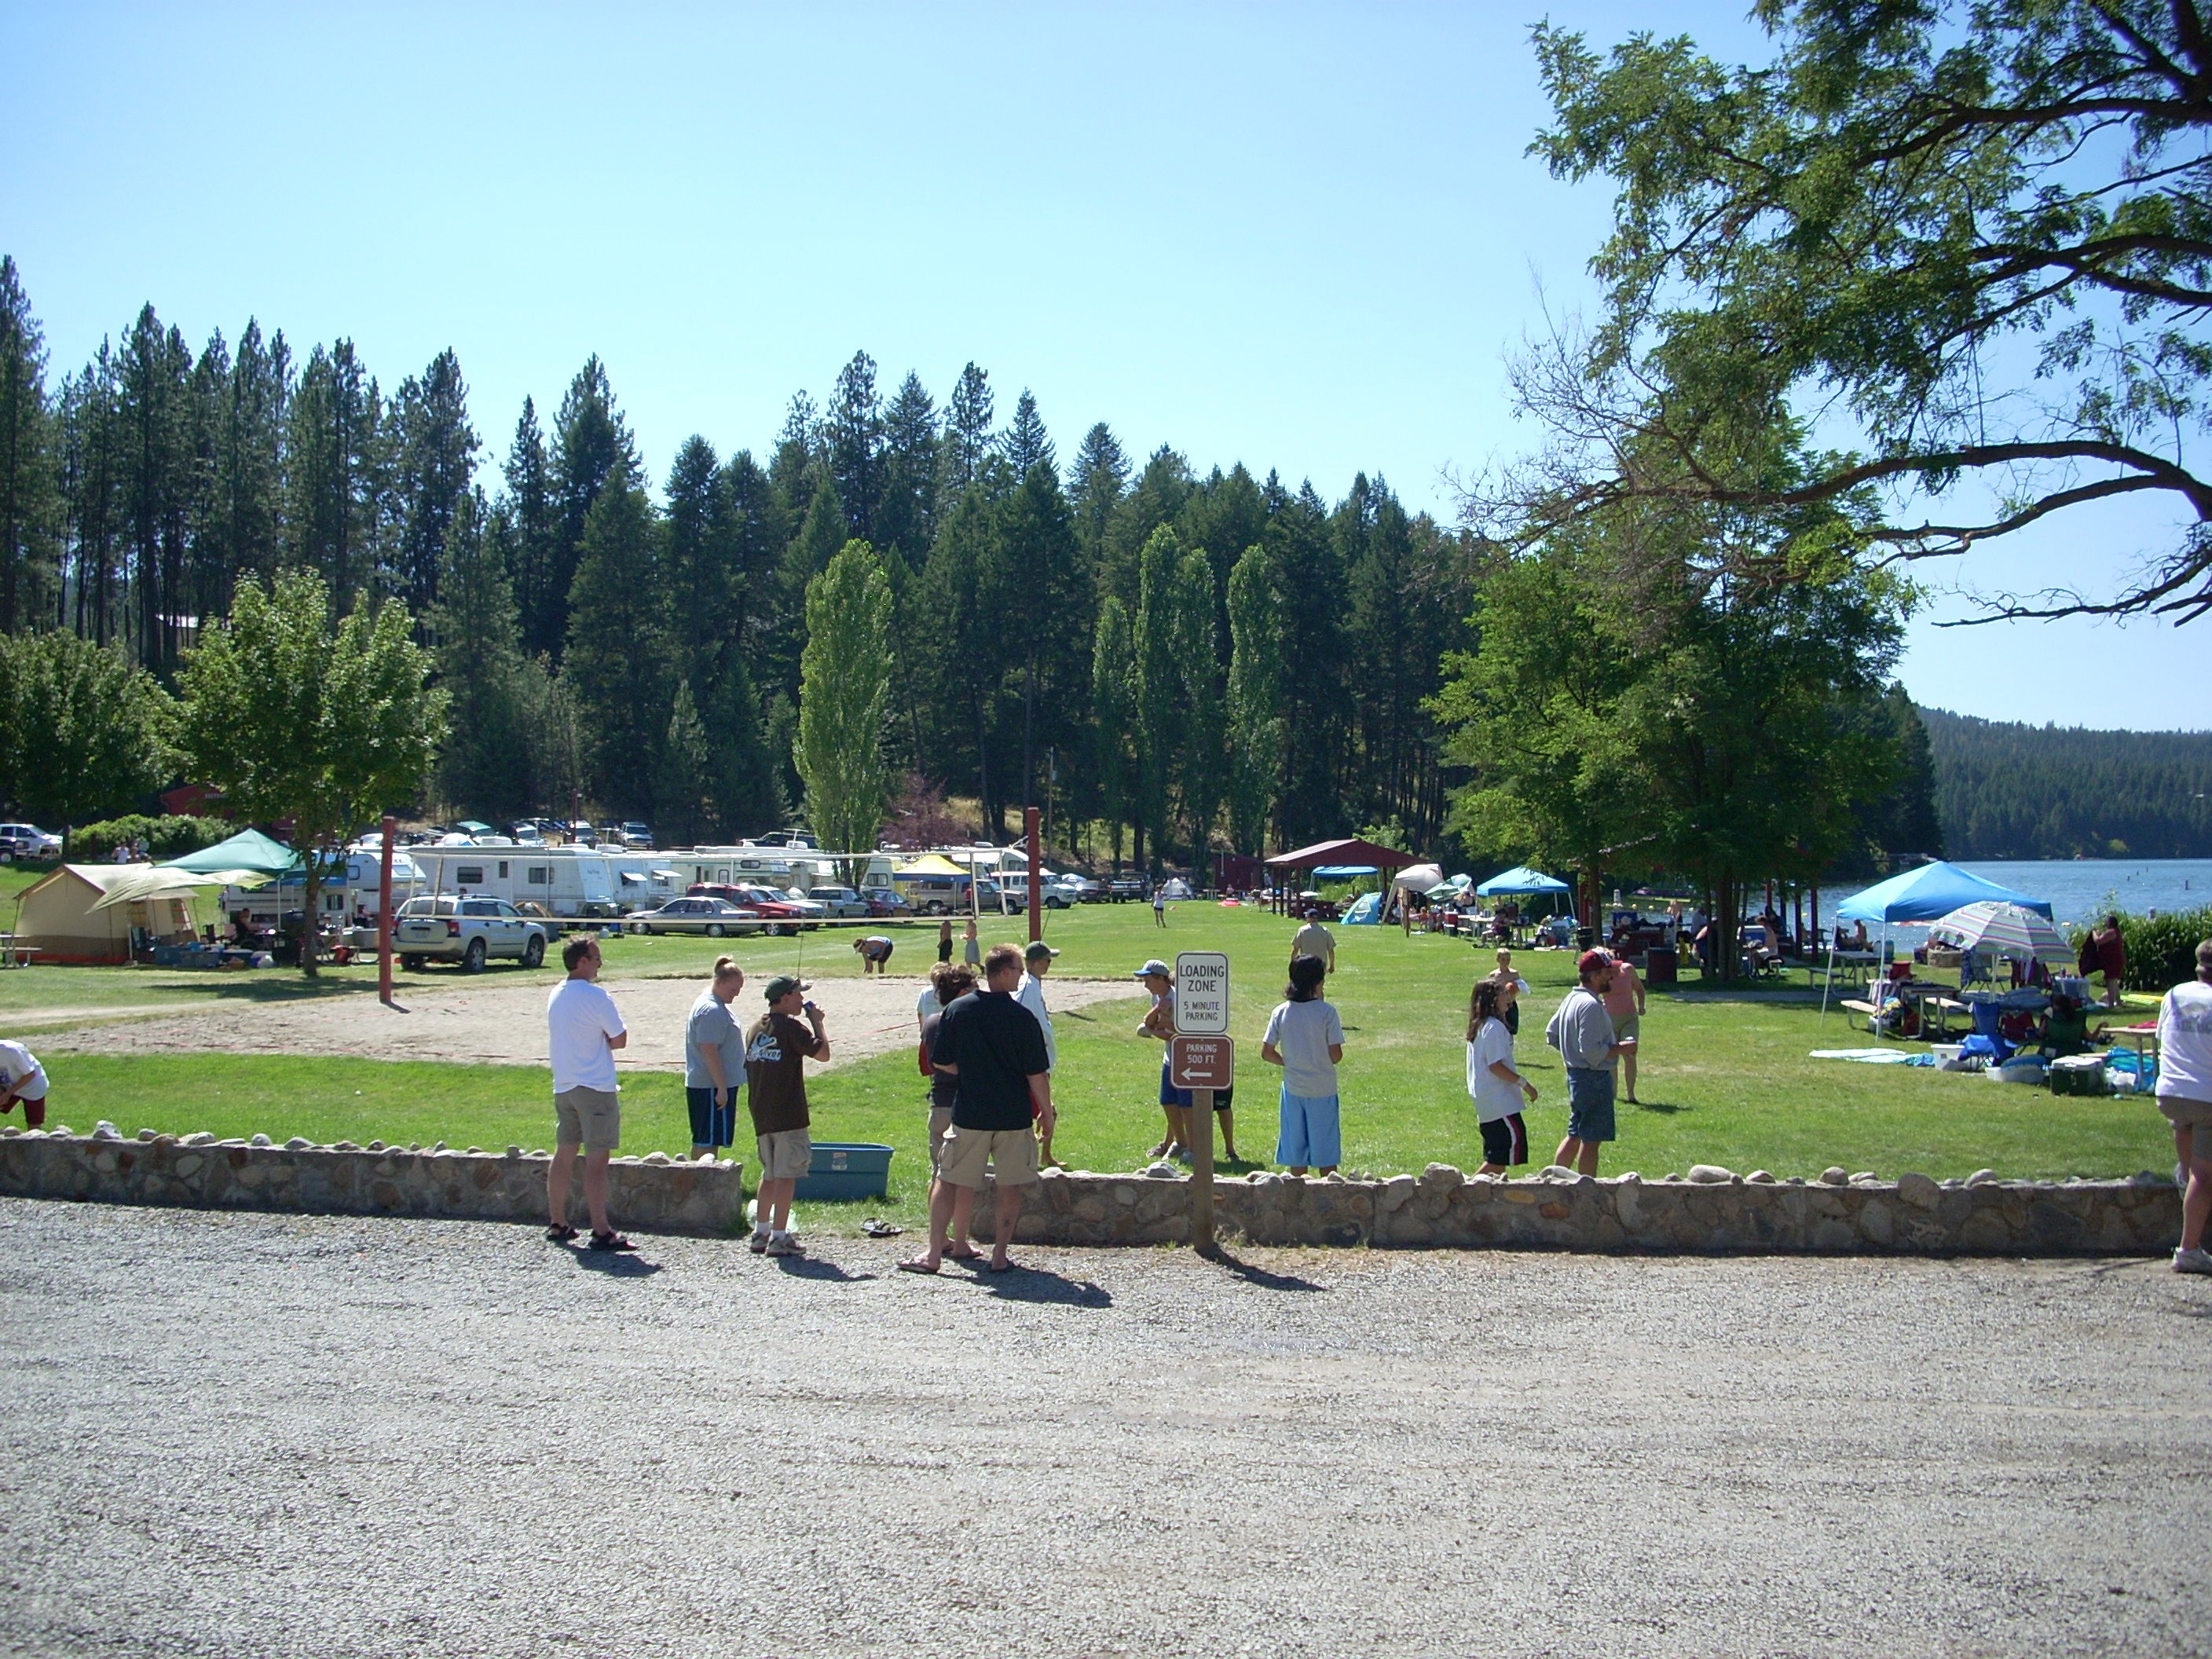 Rv Resorts Campgrounds In Spokane Wa Trip Planning